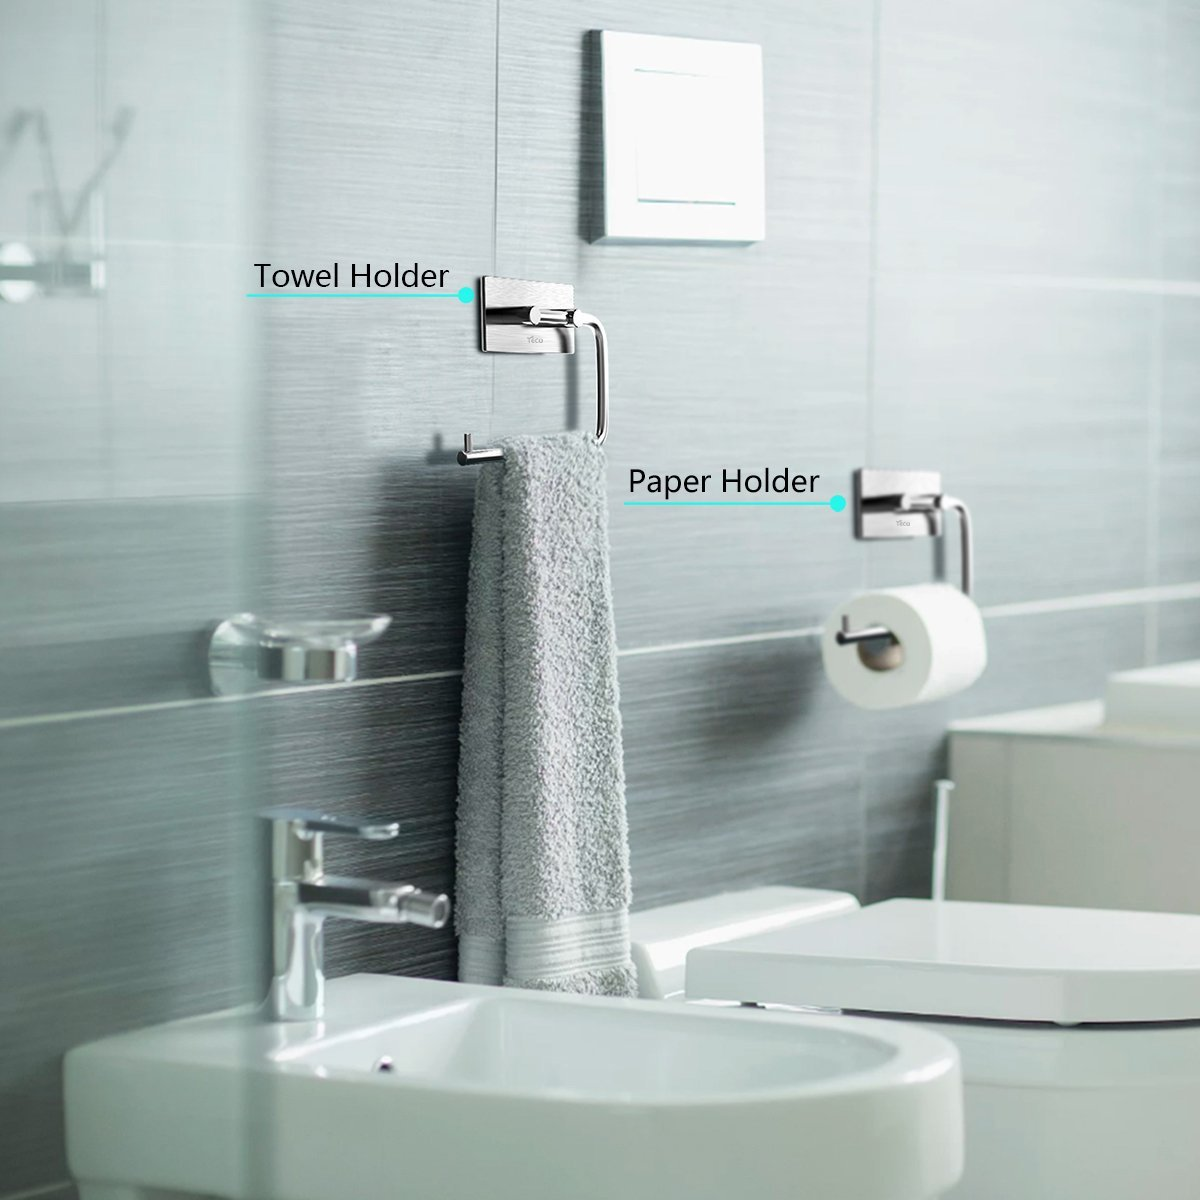 3M Self Adhesive Toilet Roll Paper Holder, YECO Brushed Stainless ...